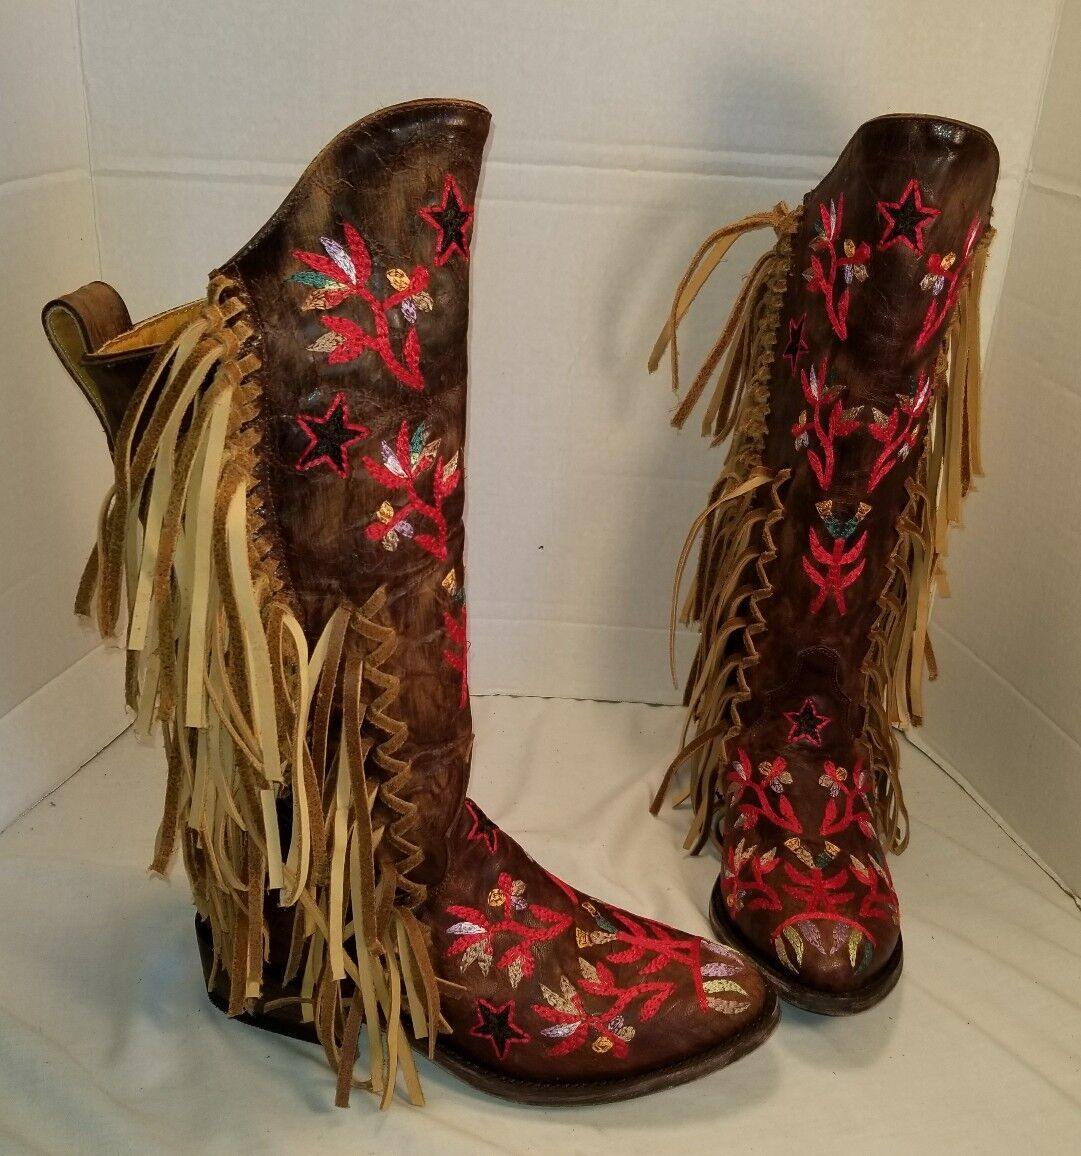 NEW MEXICANA CROSS TRAIN TRAIN TRAIN WESTERN LEATHER BOOTS US 7 EUR 37 MSRP  798.00 a9719c